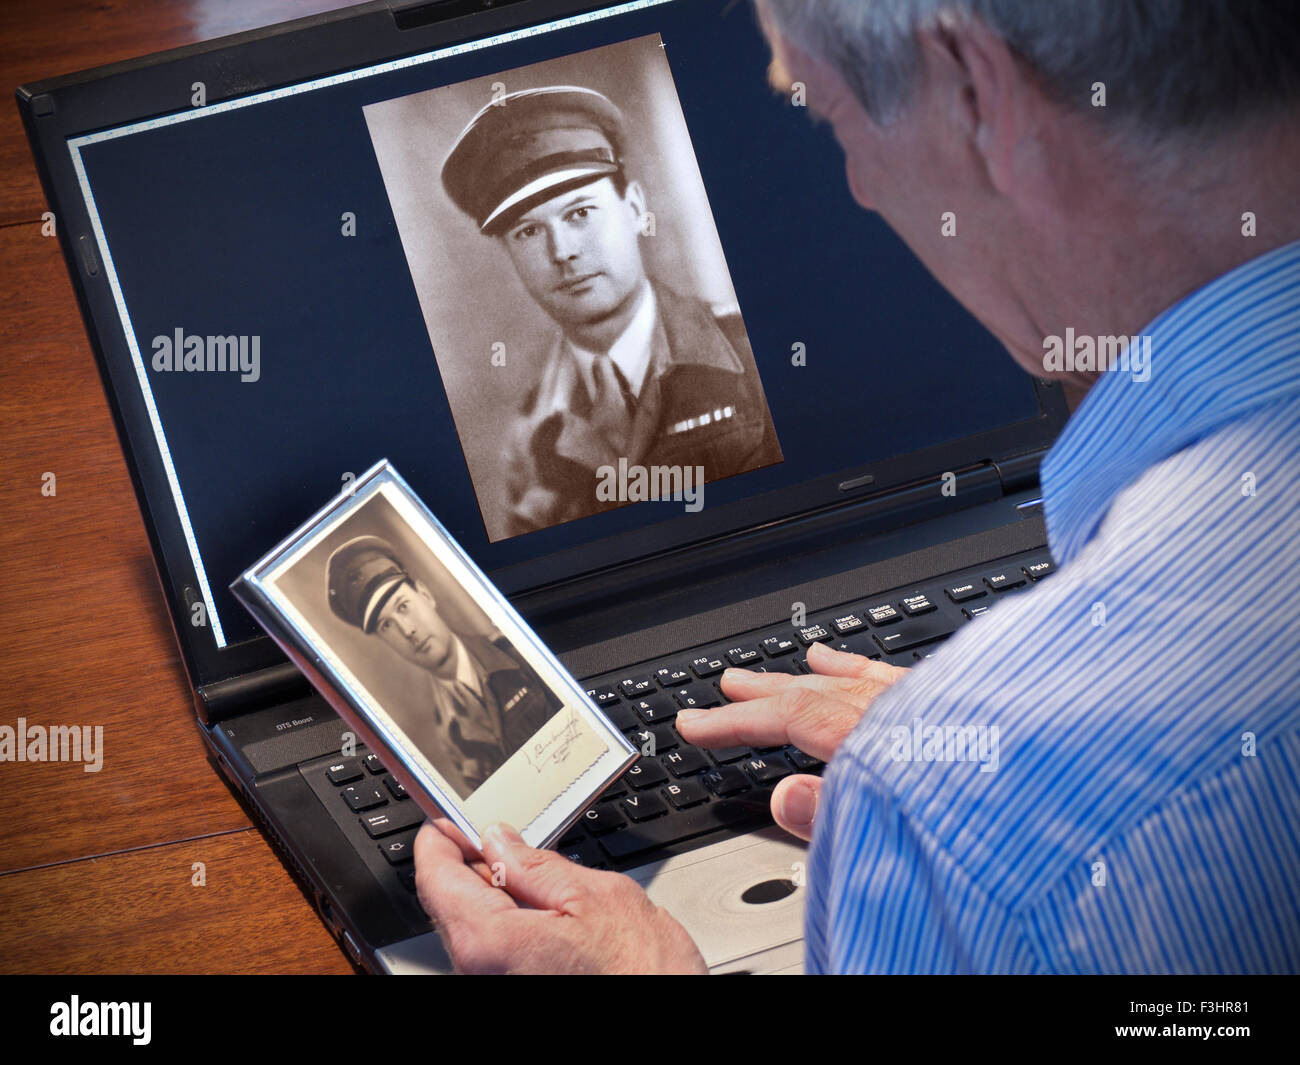 Mature man holding a framed B&W photo with enhanced scanned image of same on computer scree - Stock Image